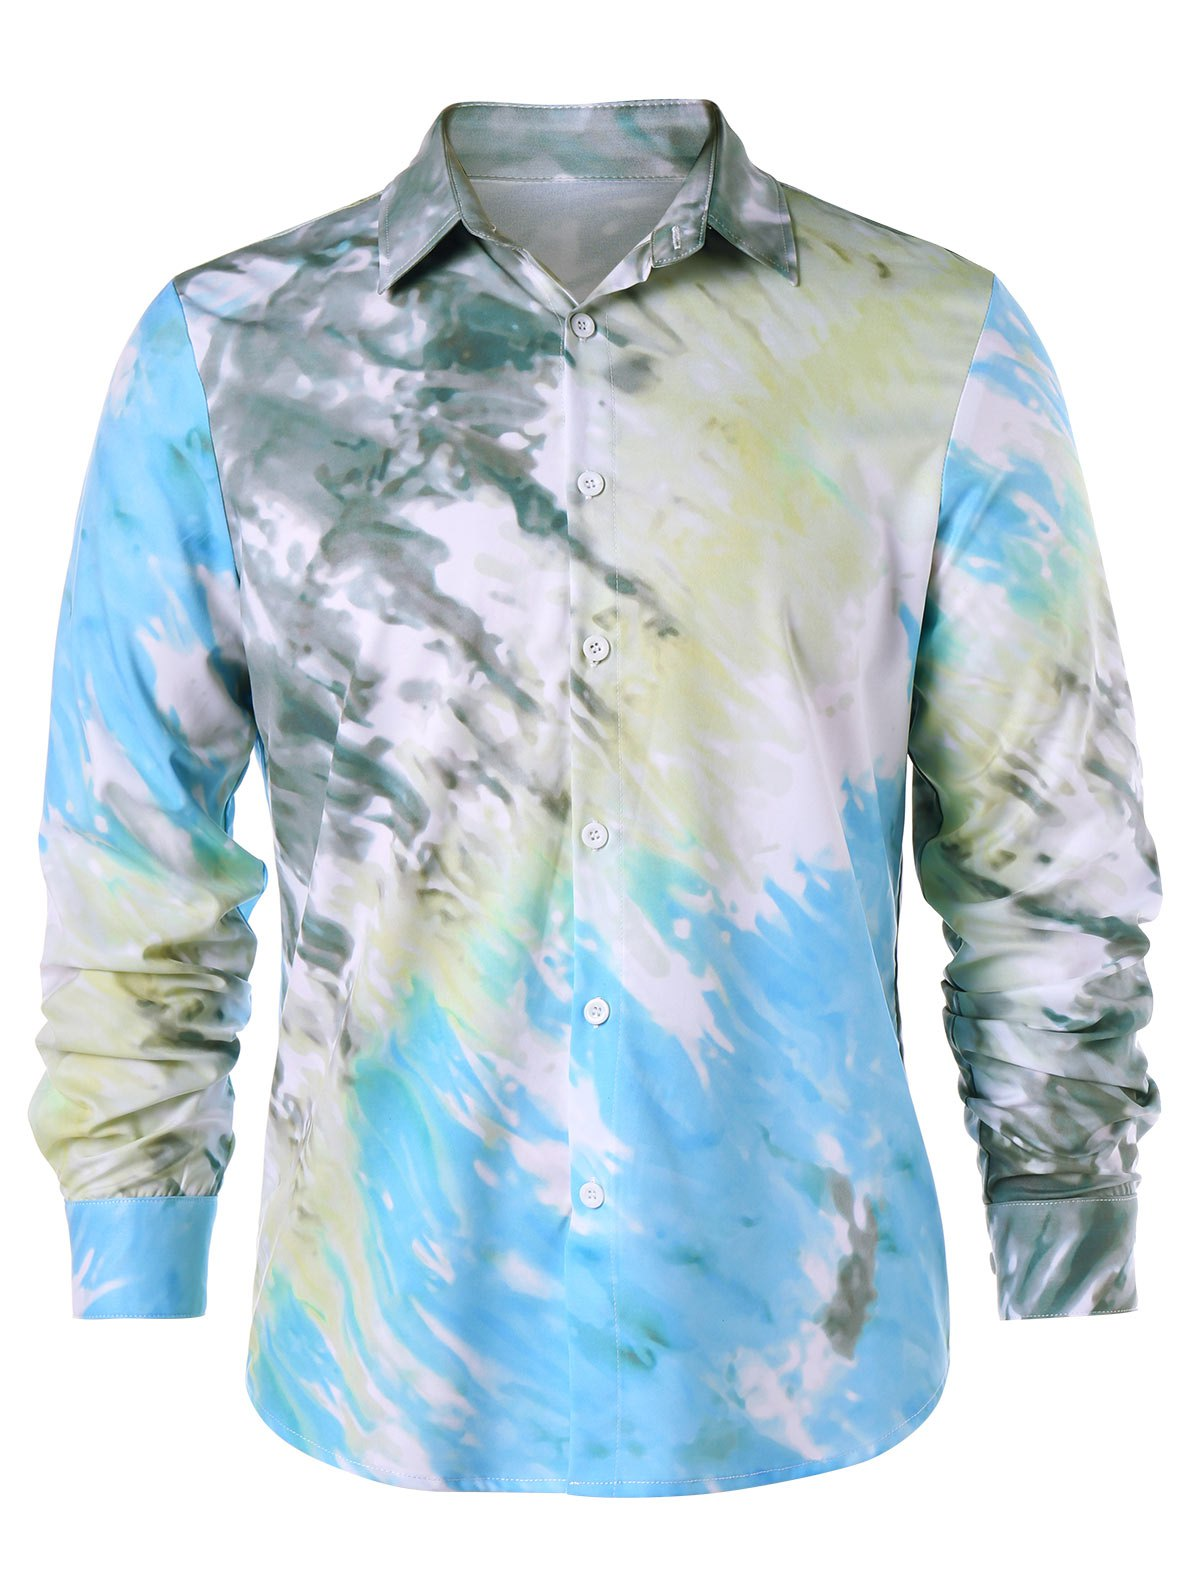 Fancy Long Sleeve Tie Dye Shirt